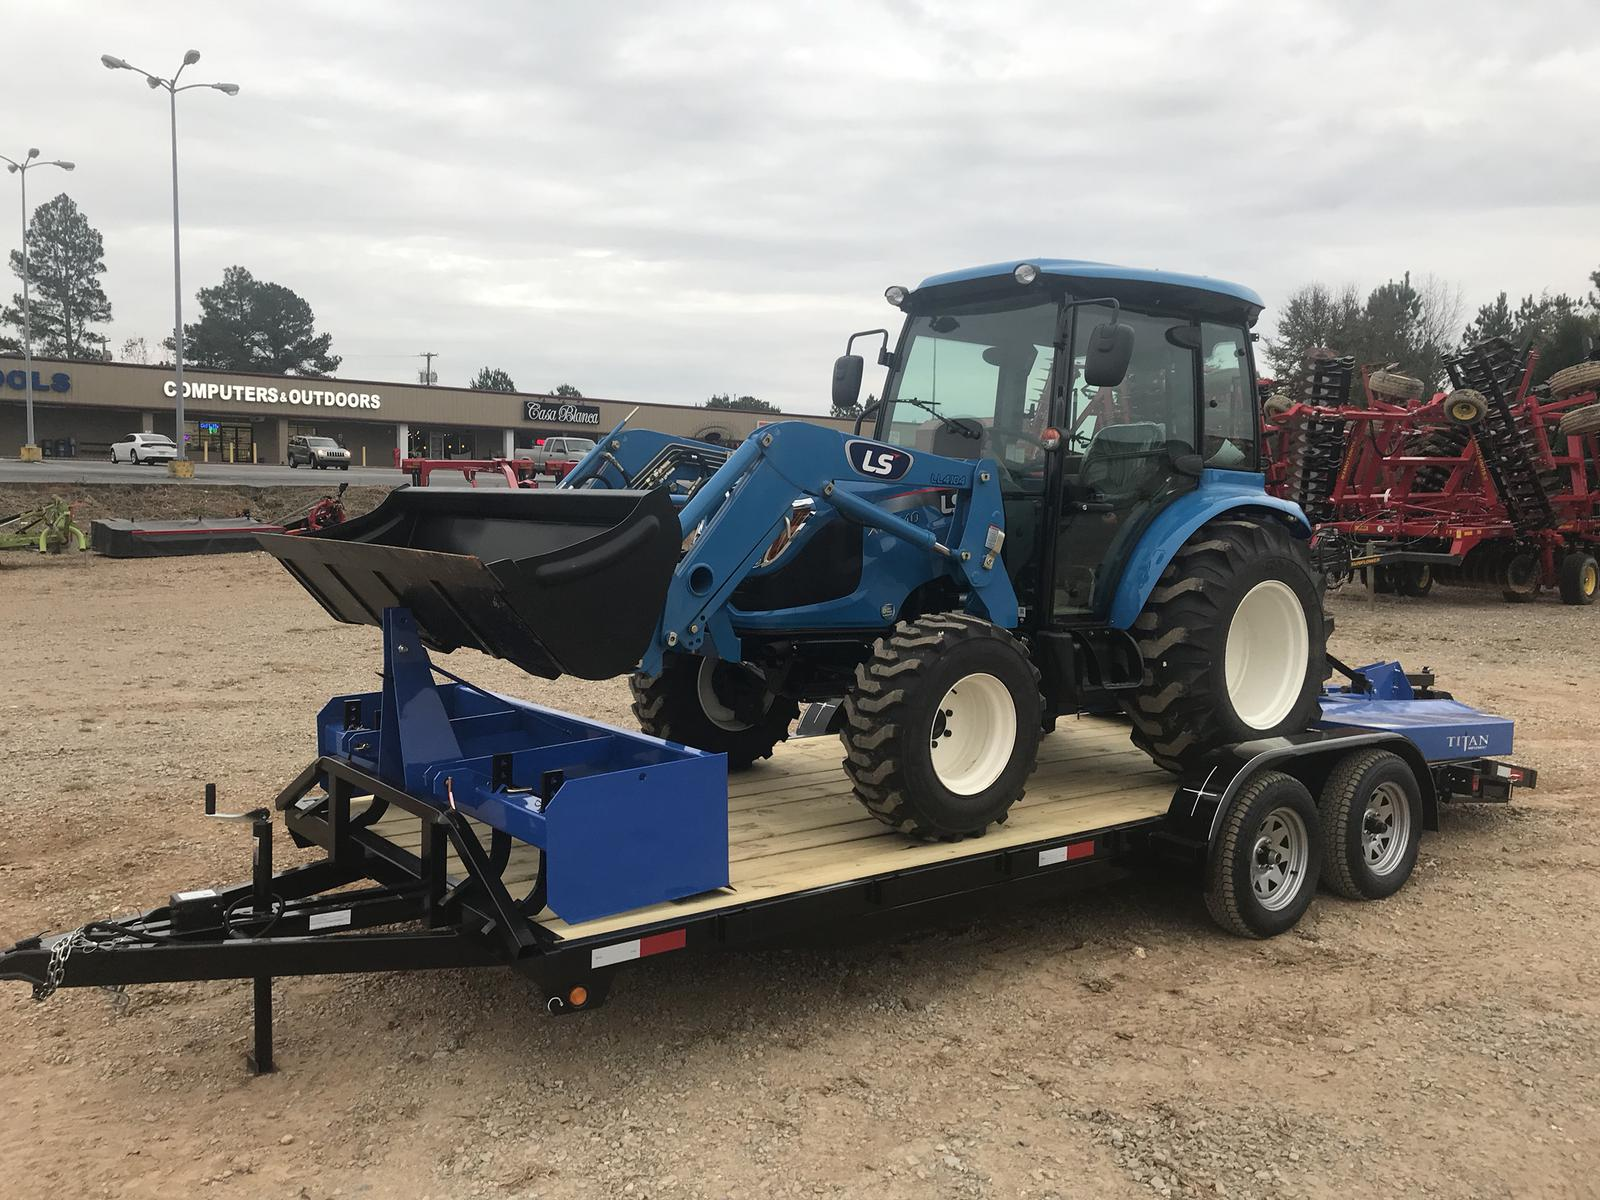 Inventory Haney Equipment Company Inc Have A 55 Hp Briggs And Stratton Log Splitter When Using 2018